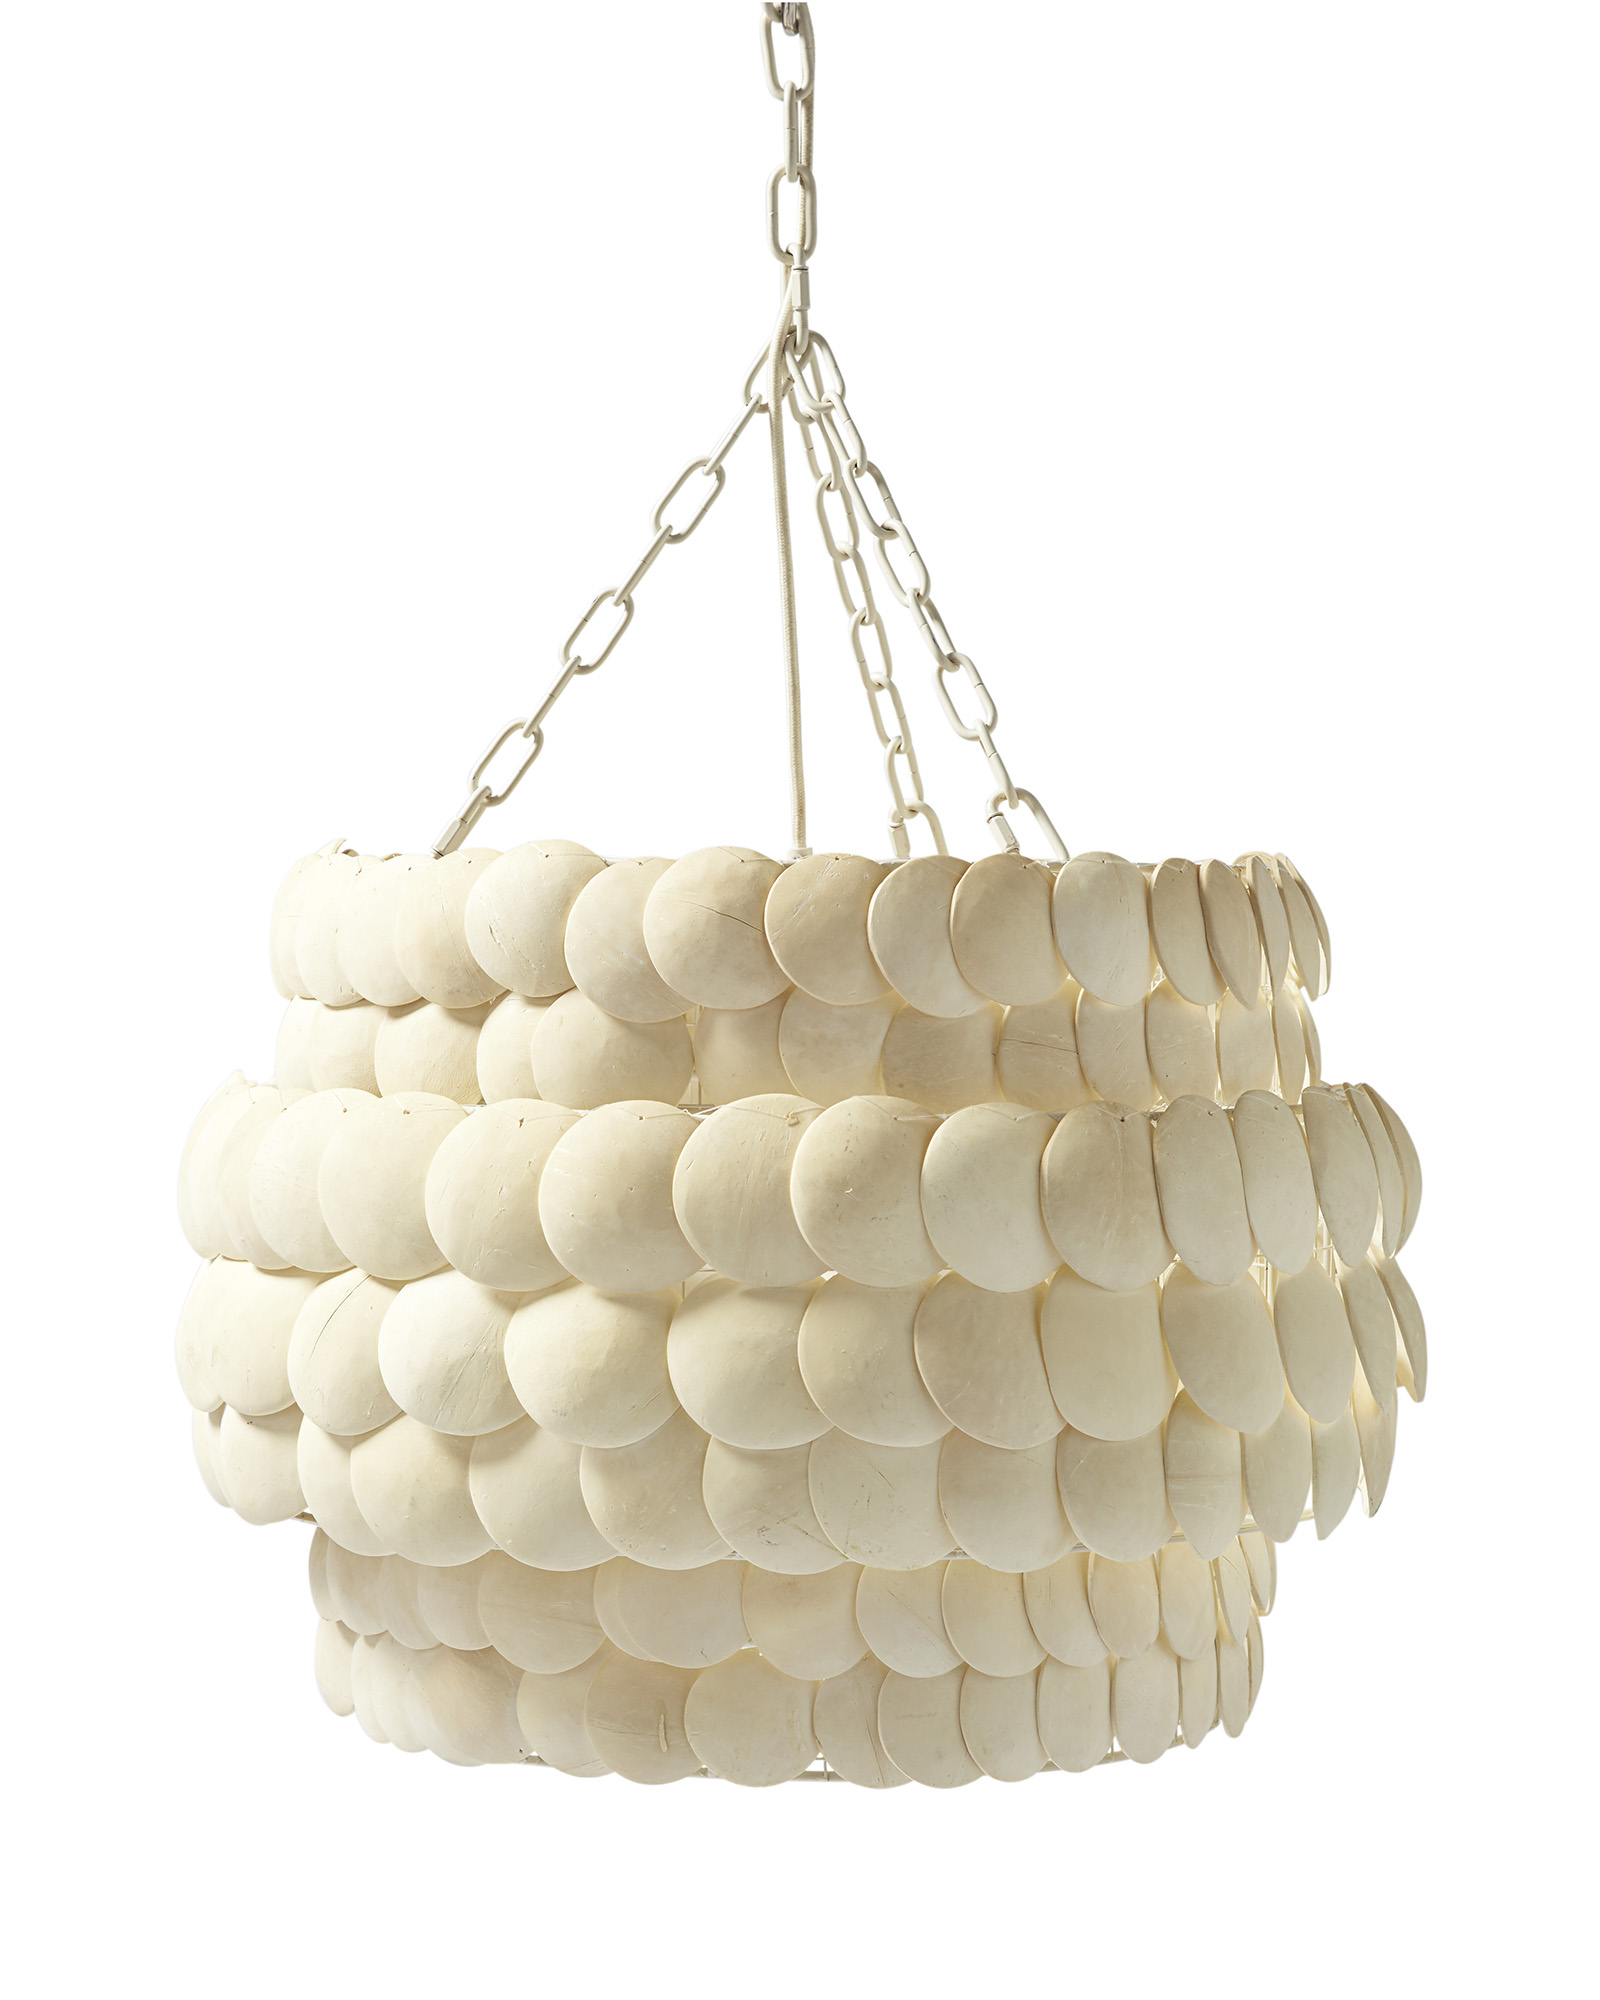 Lighting_Pescadero_Tiered_Chandelier_MV_0137_Crop_OL.jpg